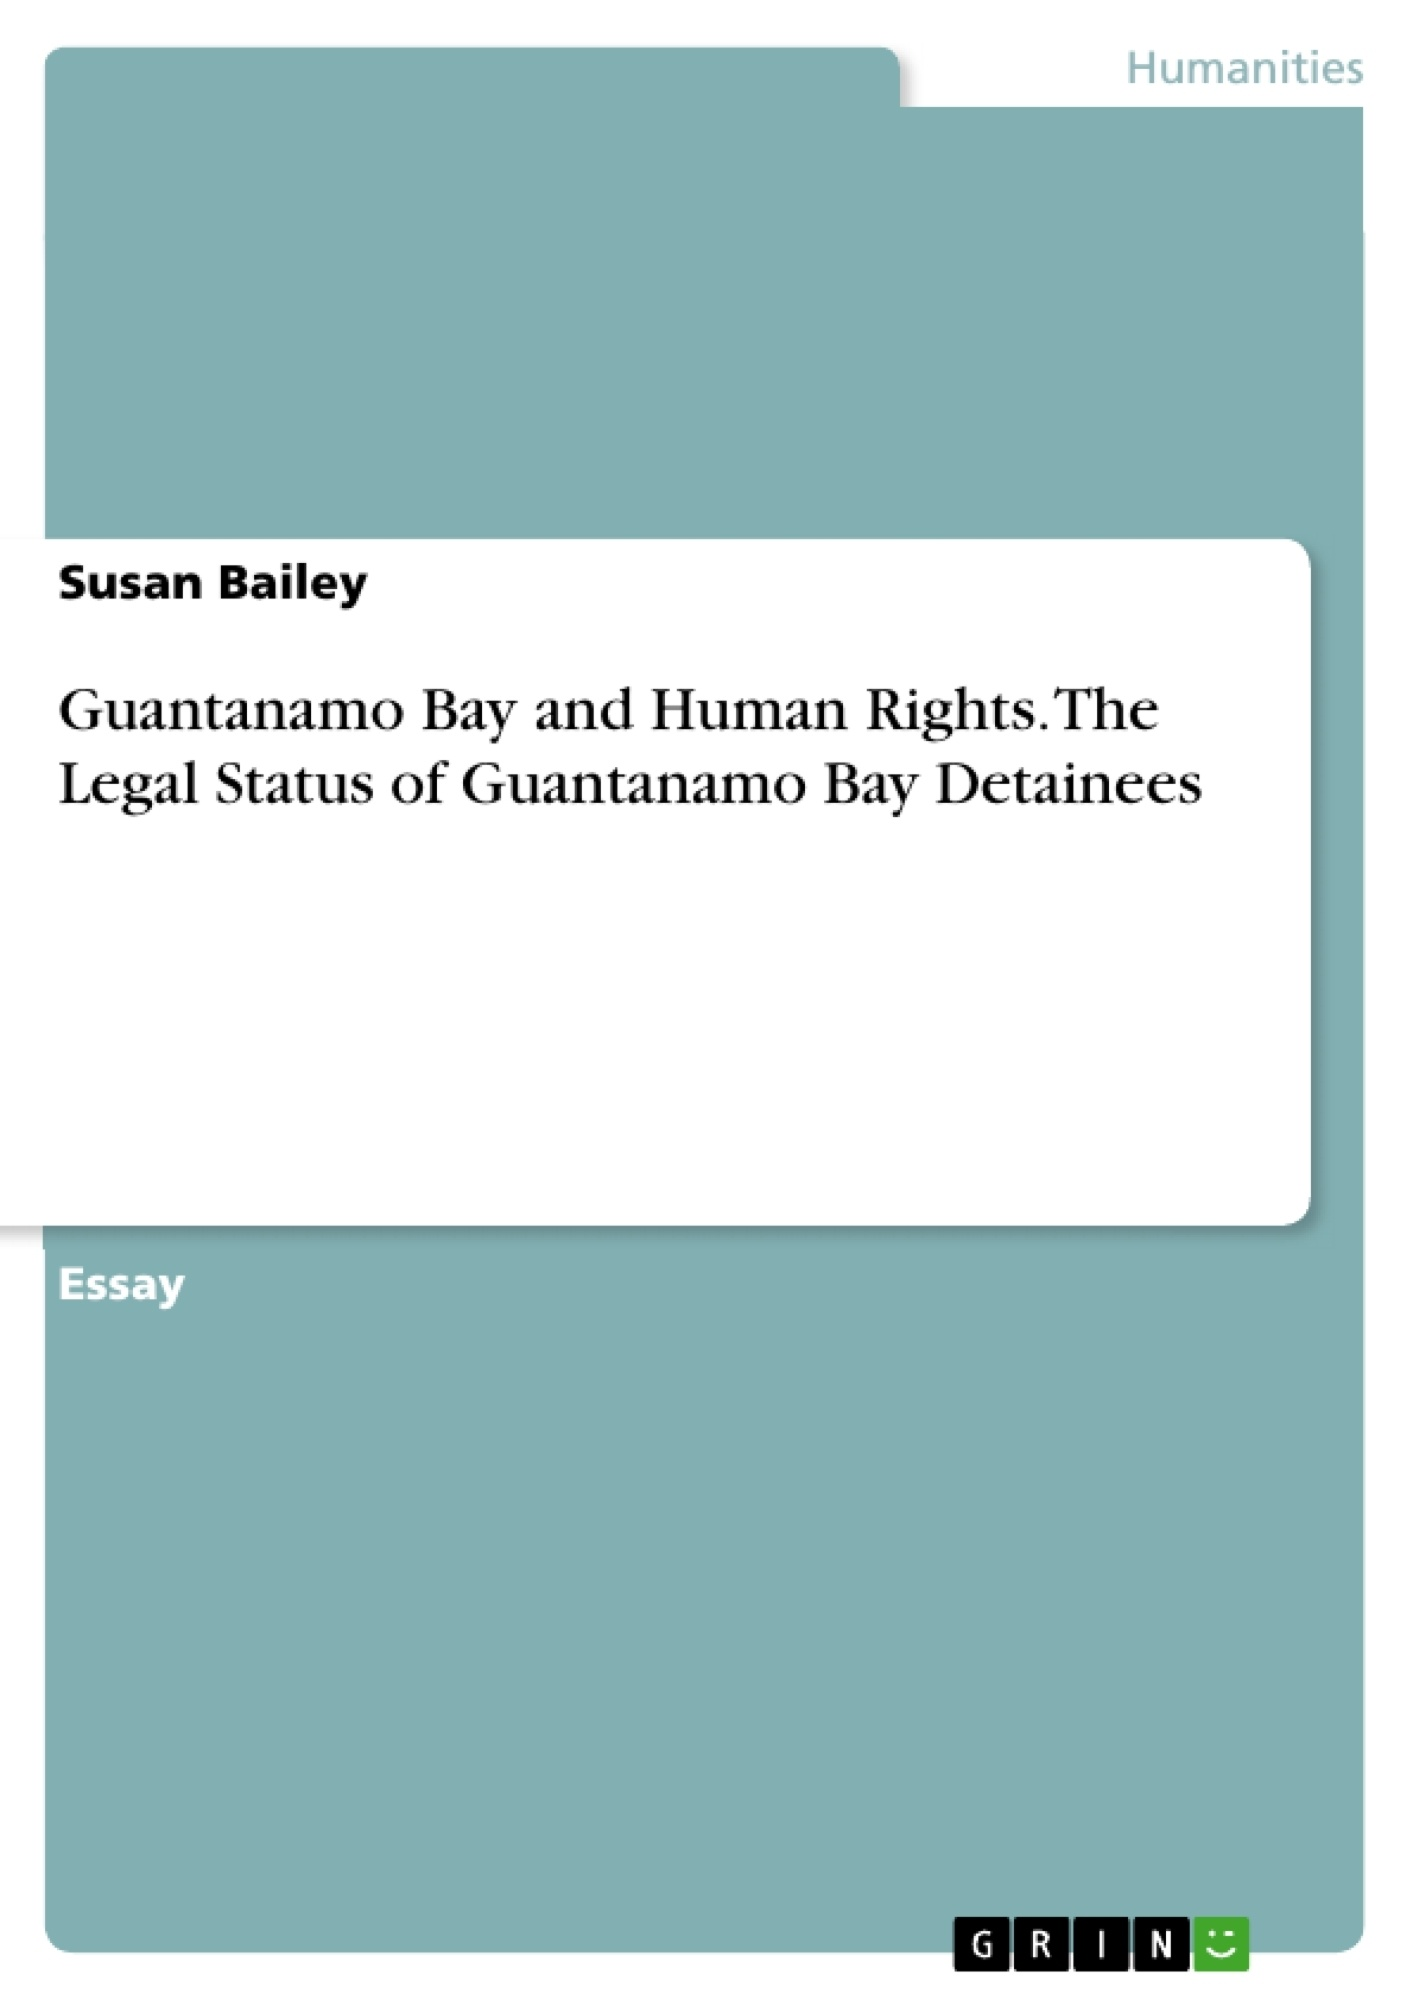 Title: Guantanamo Bay and Human Rights. The Legal Status of Guantanamo Bay Detainees